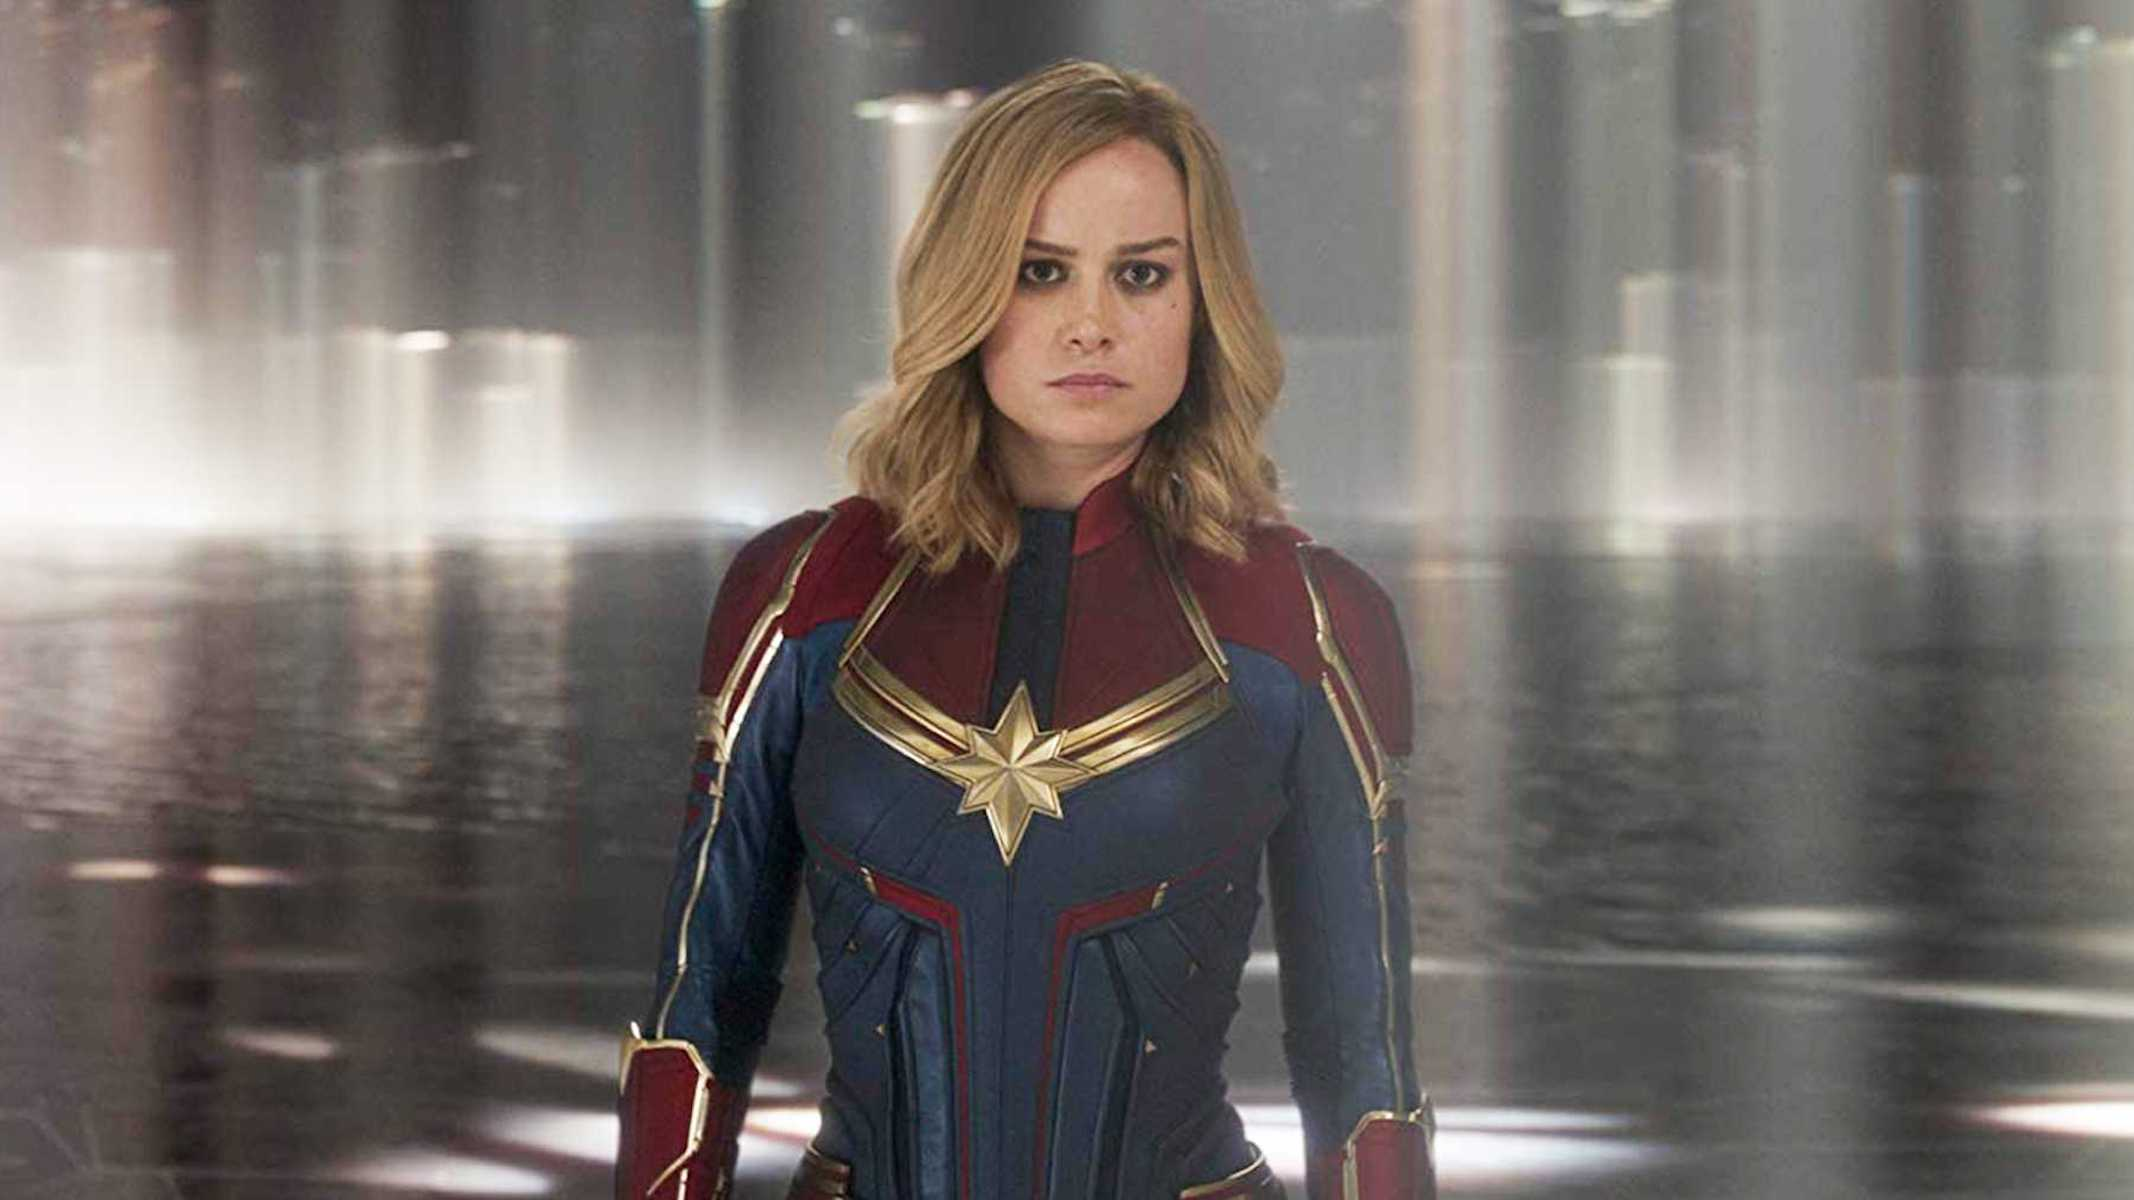 10. Captain Marvel